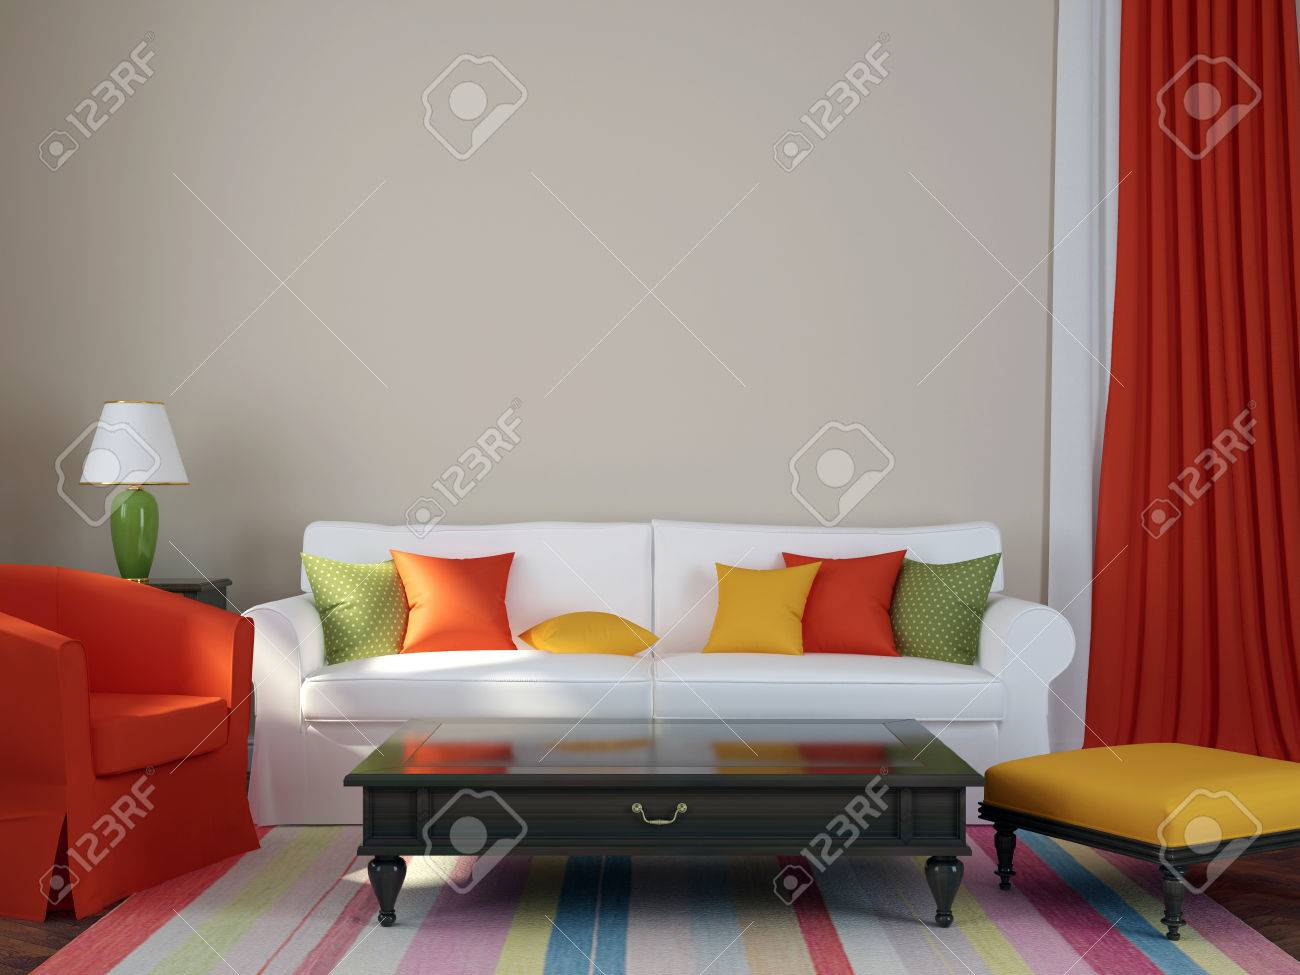 Colorful Composition Made In A Trendy Eclectic Style, Consisting Of A Sofa,  Armchair,